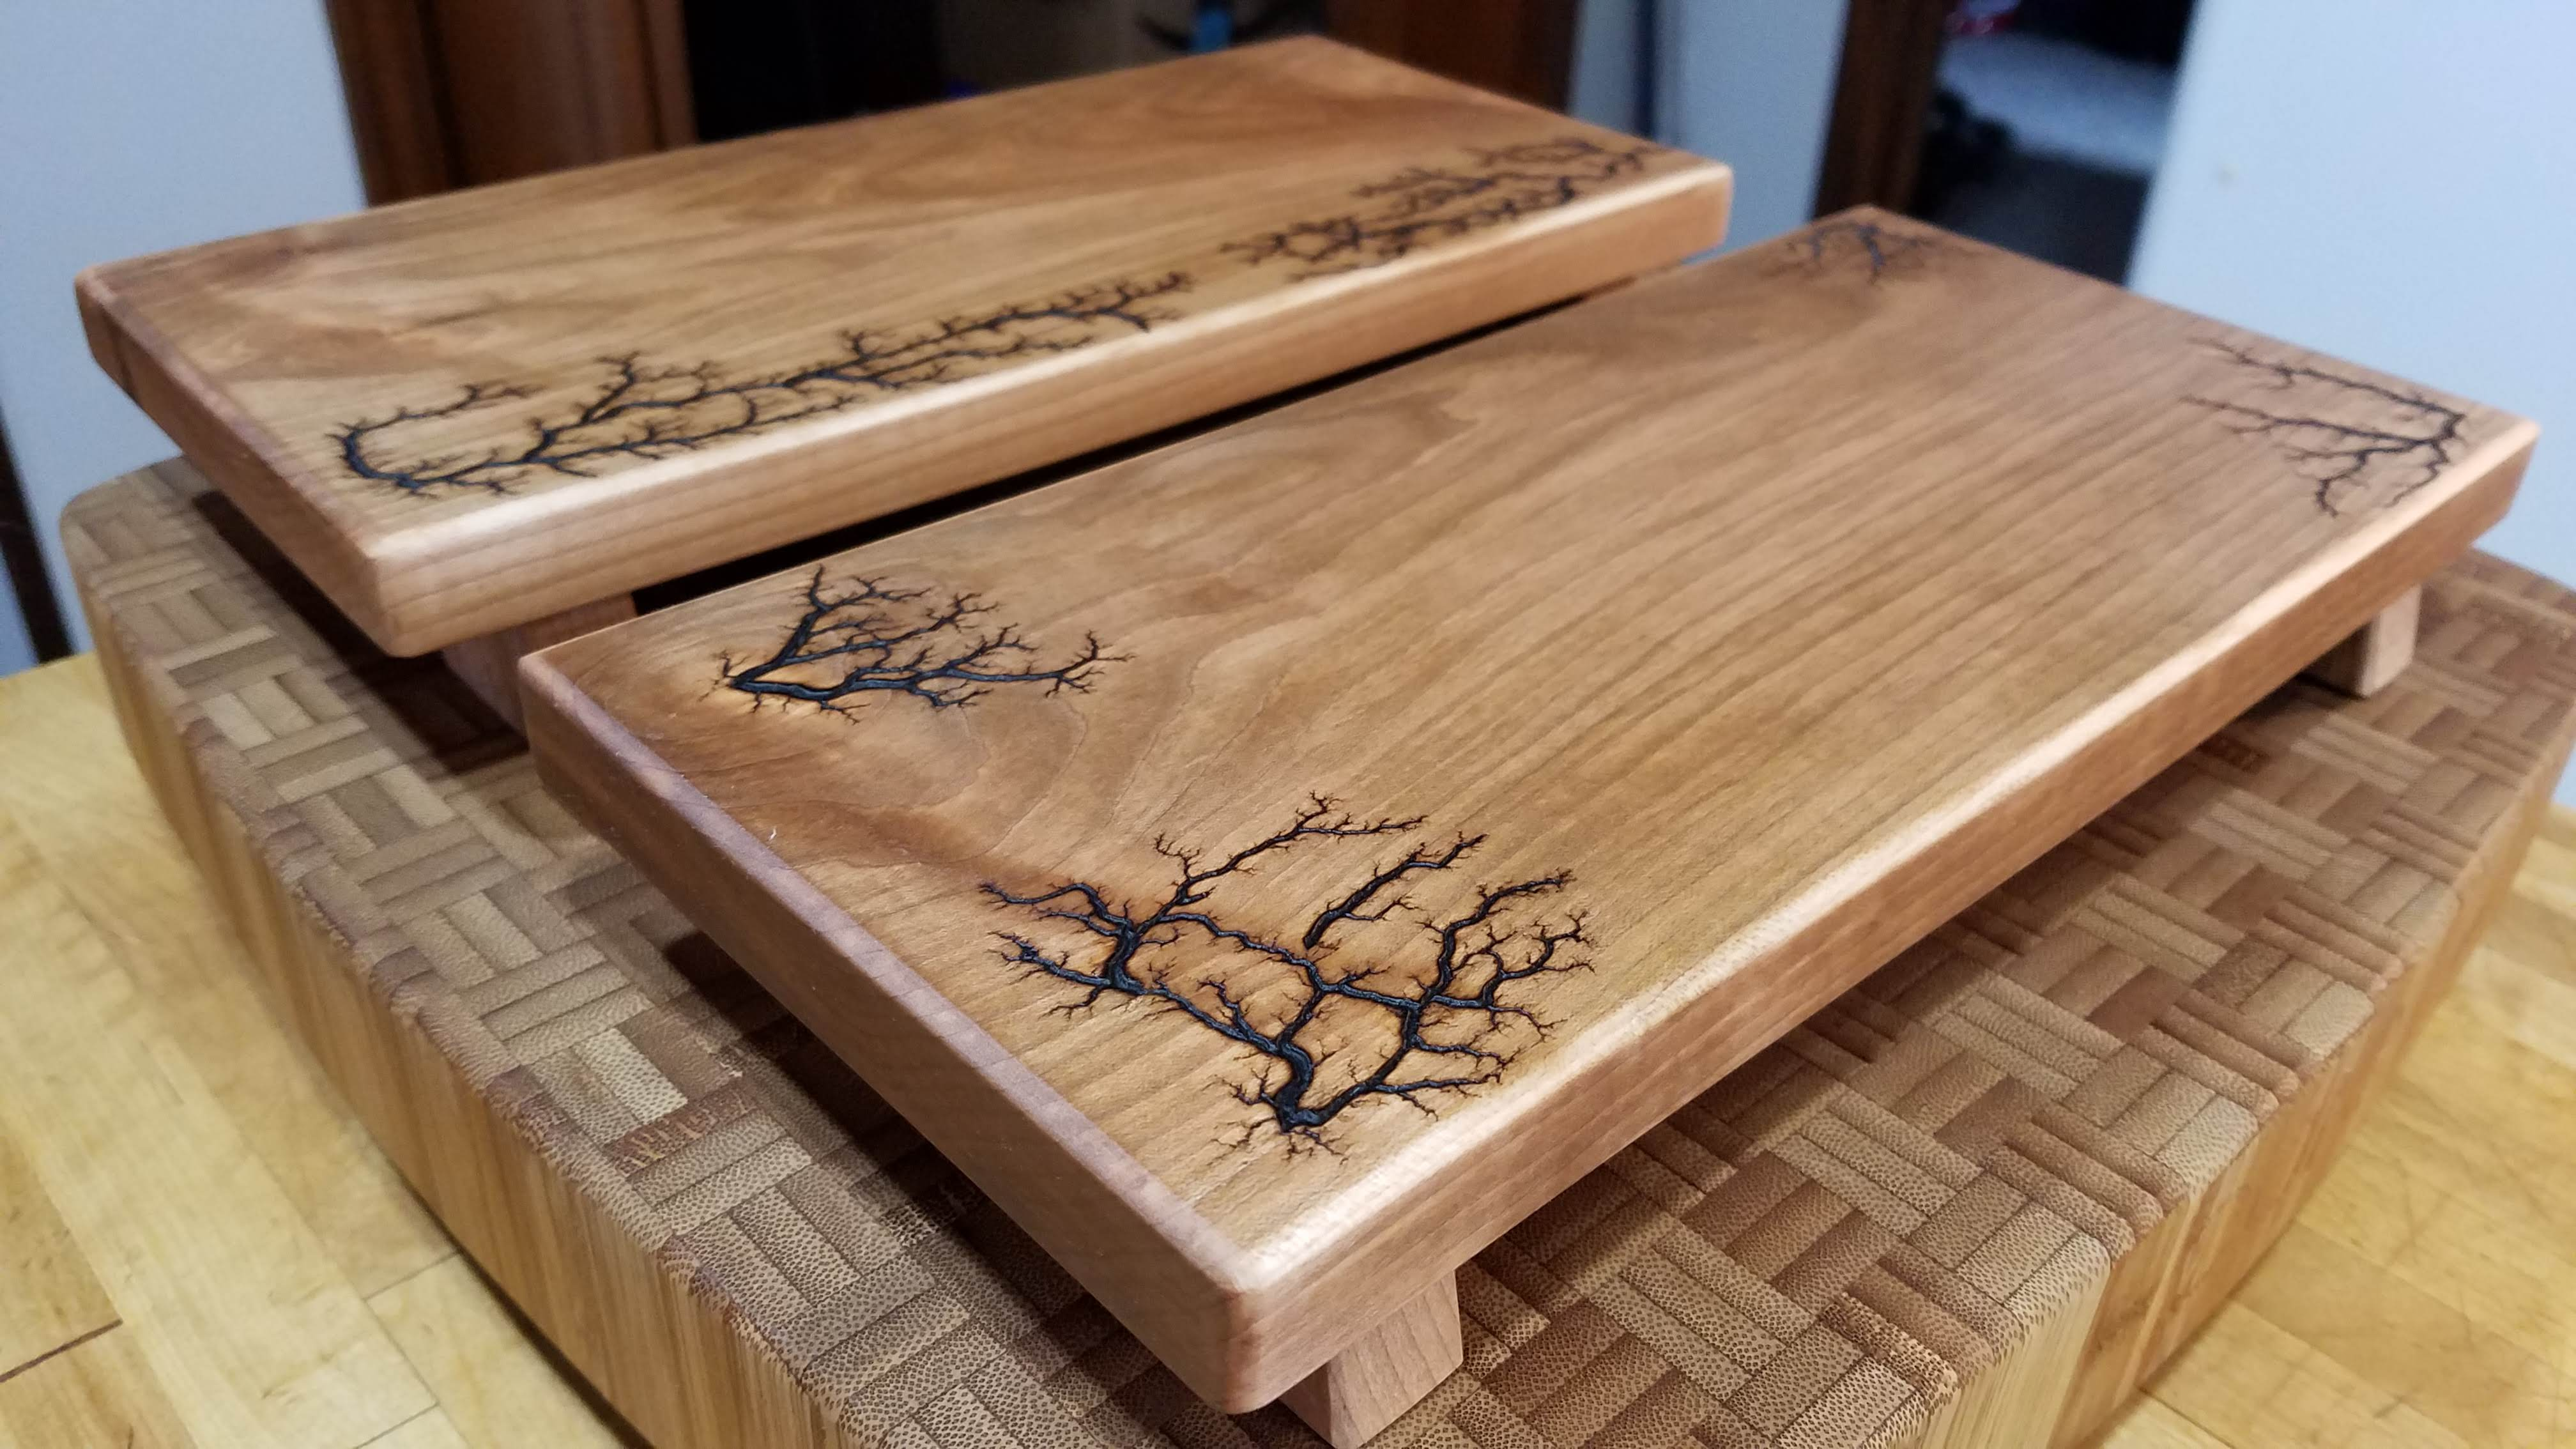 Sushi or Charcuterie serving board (Made-to-Order)